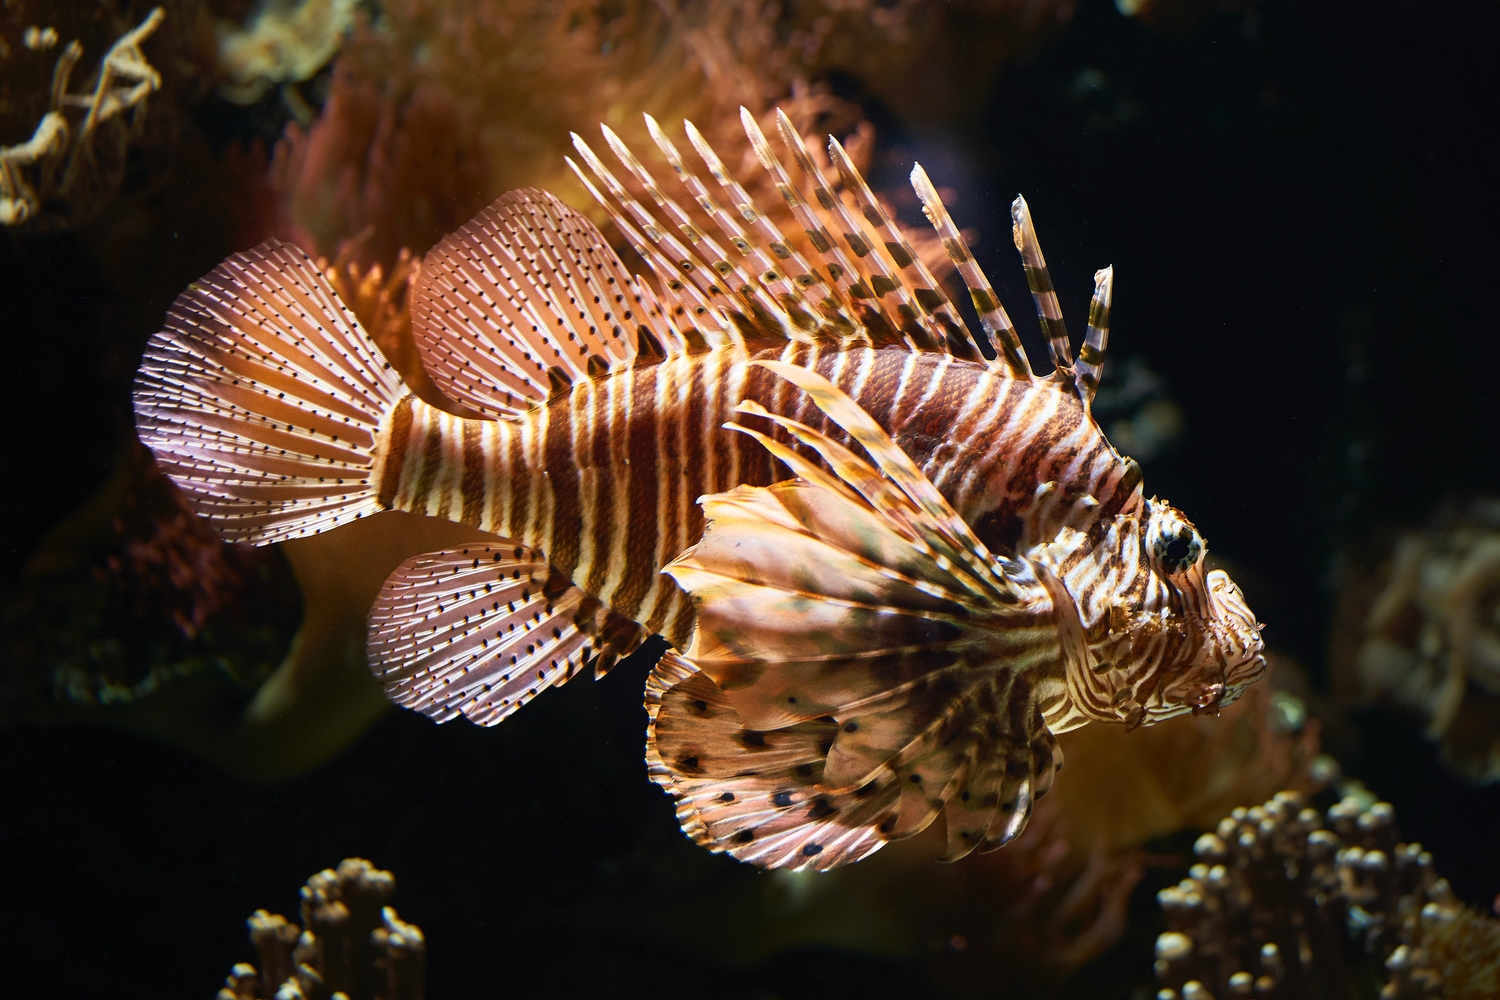 Close up of a Lionfish swimming